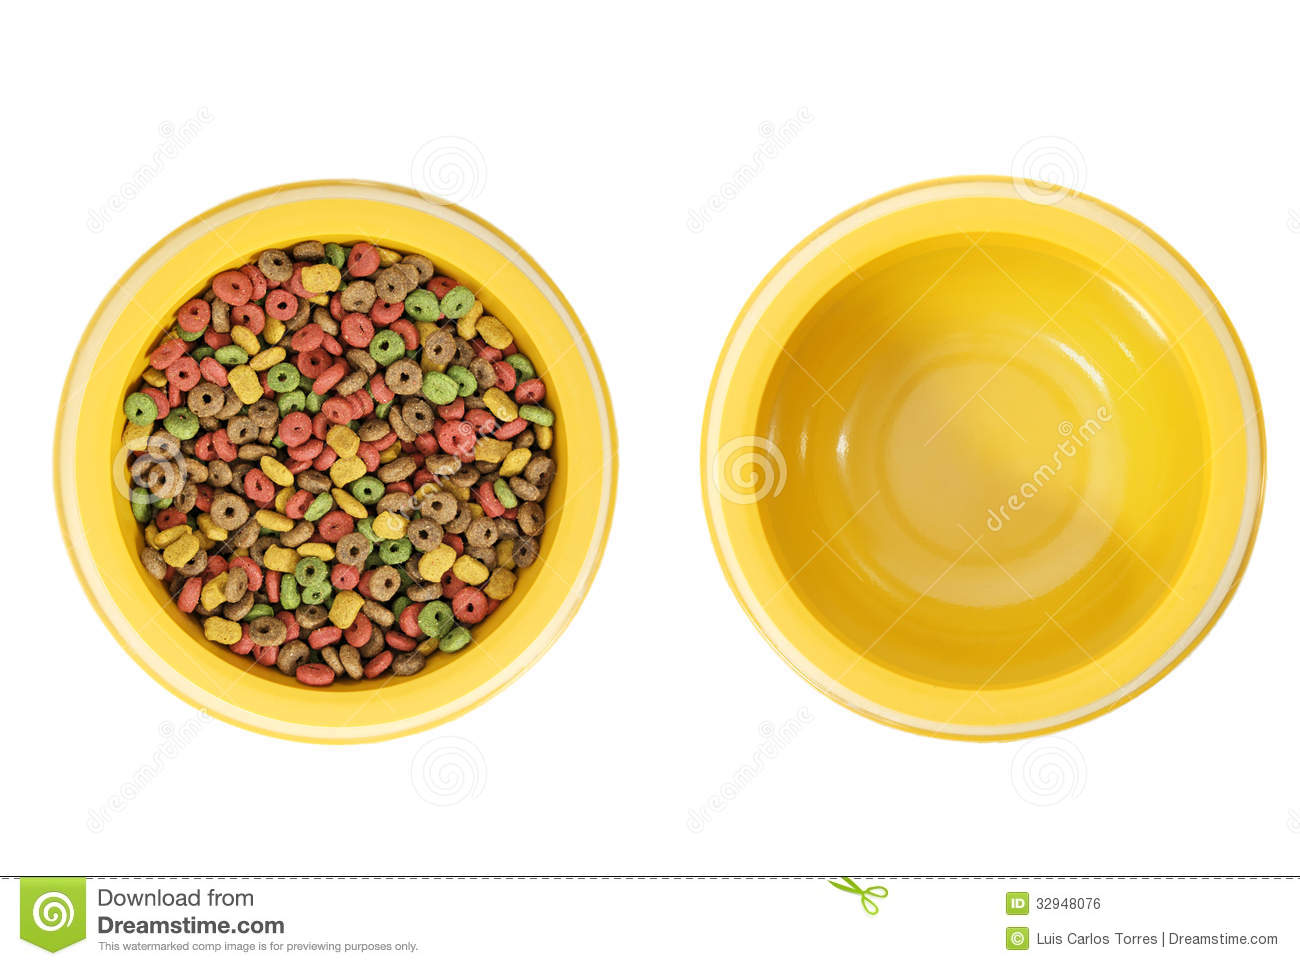 Http Www Dreamstime Com Royalty Free Stock Image Full Empty Dog Bowl Isolated Bowls One Food Other Image32948076